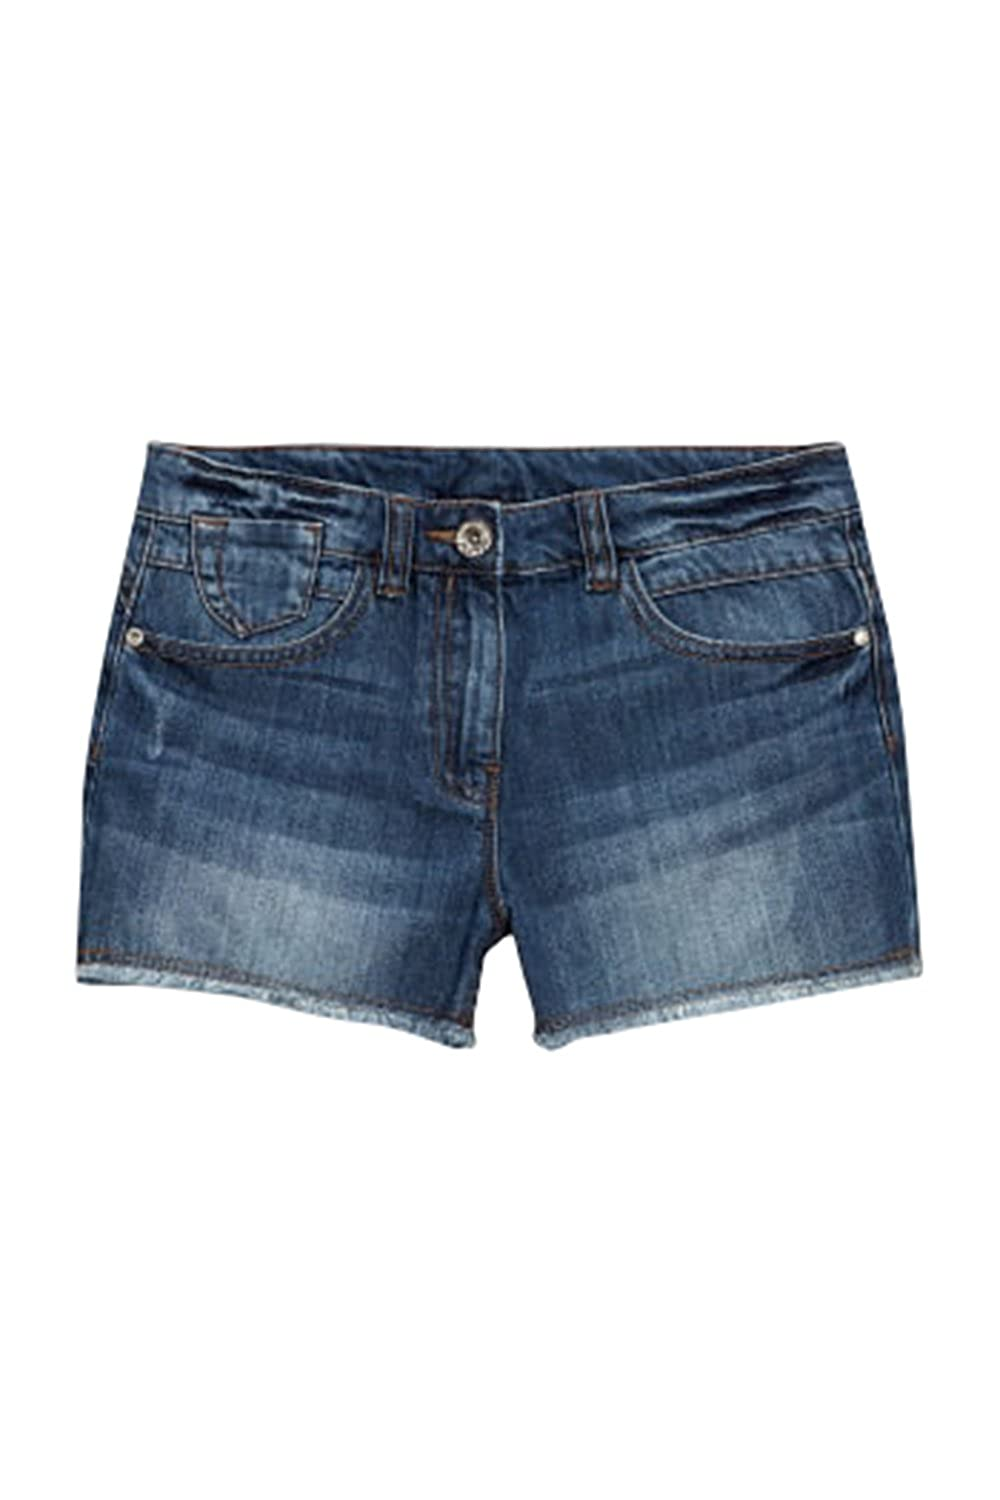 Highstreet Outlet Girls Kids Blue Denim Shorts with Frayed Edge and Adjustable Waist